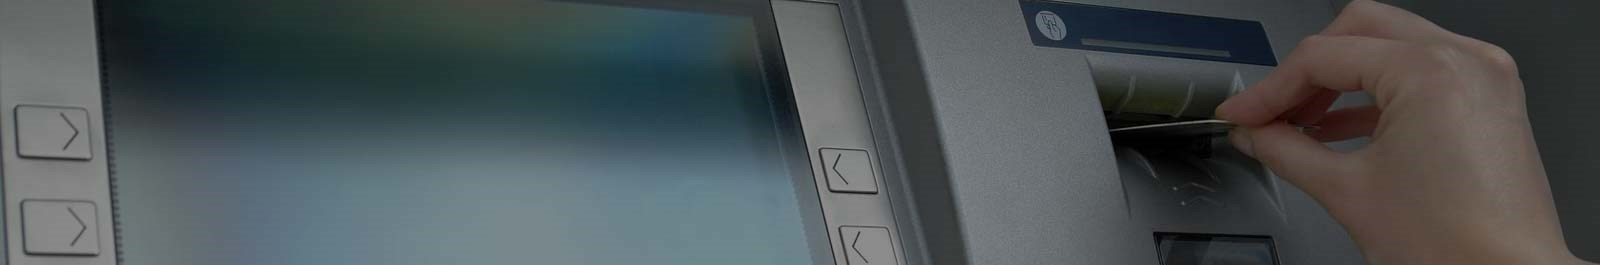 Header image - closeup of an ATM screen